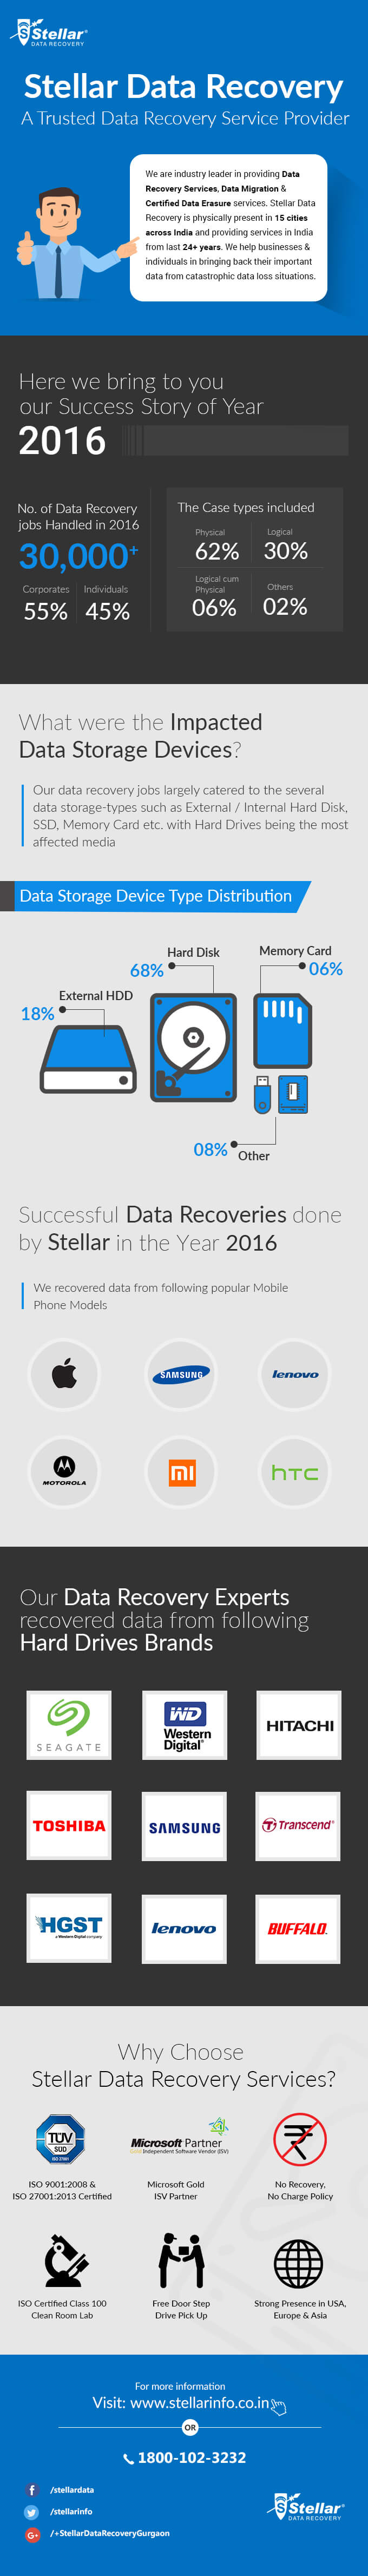 Successful Data Recovery by Stellar